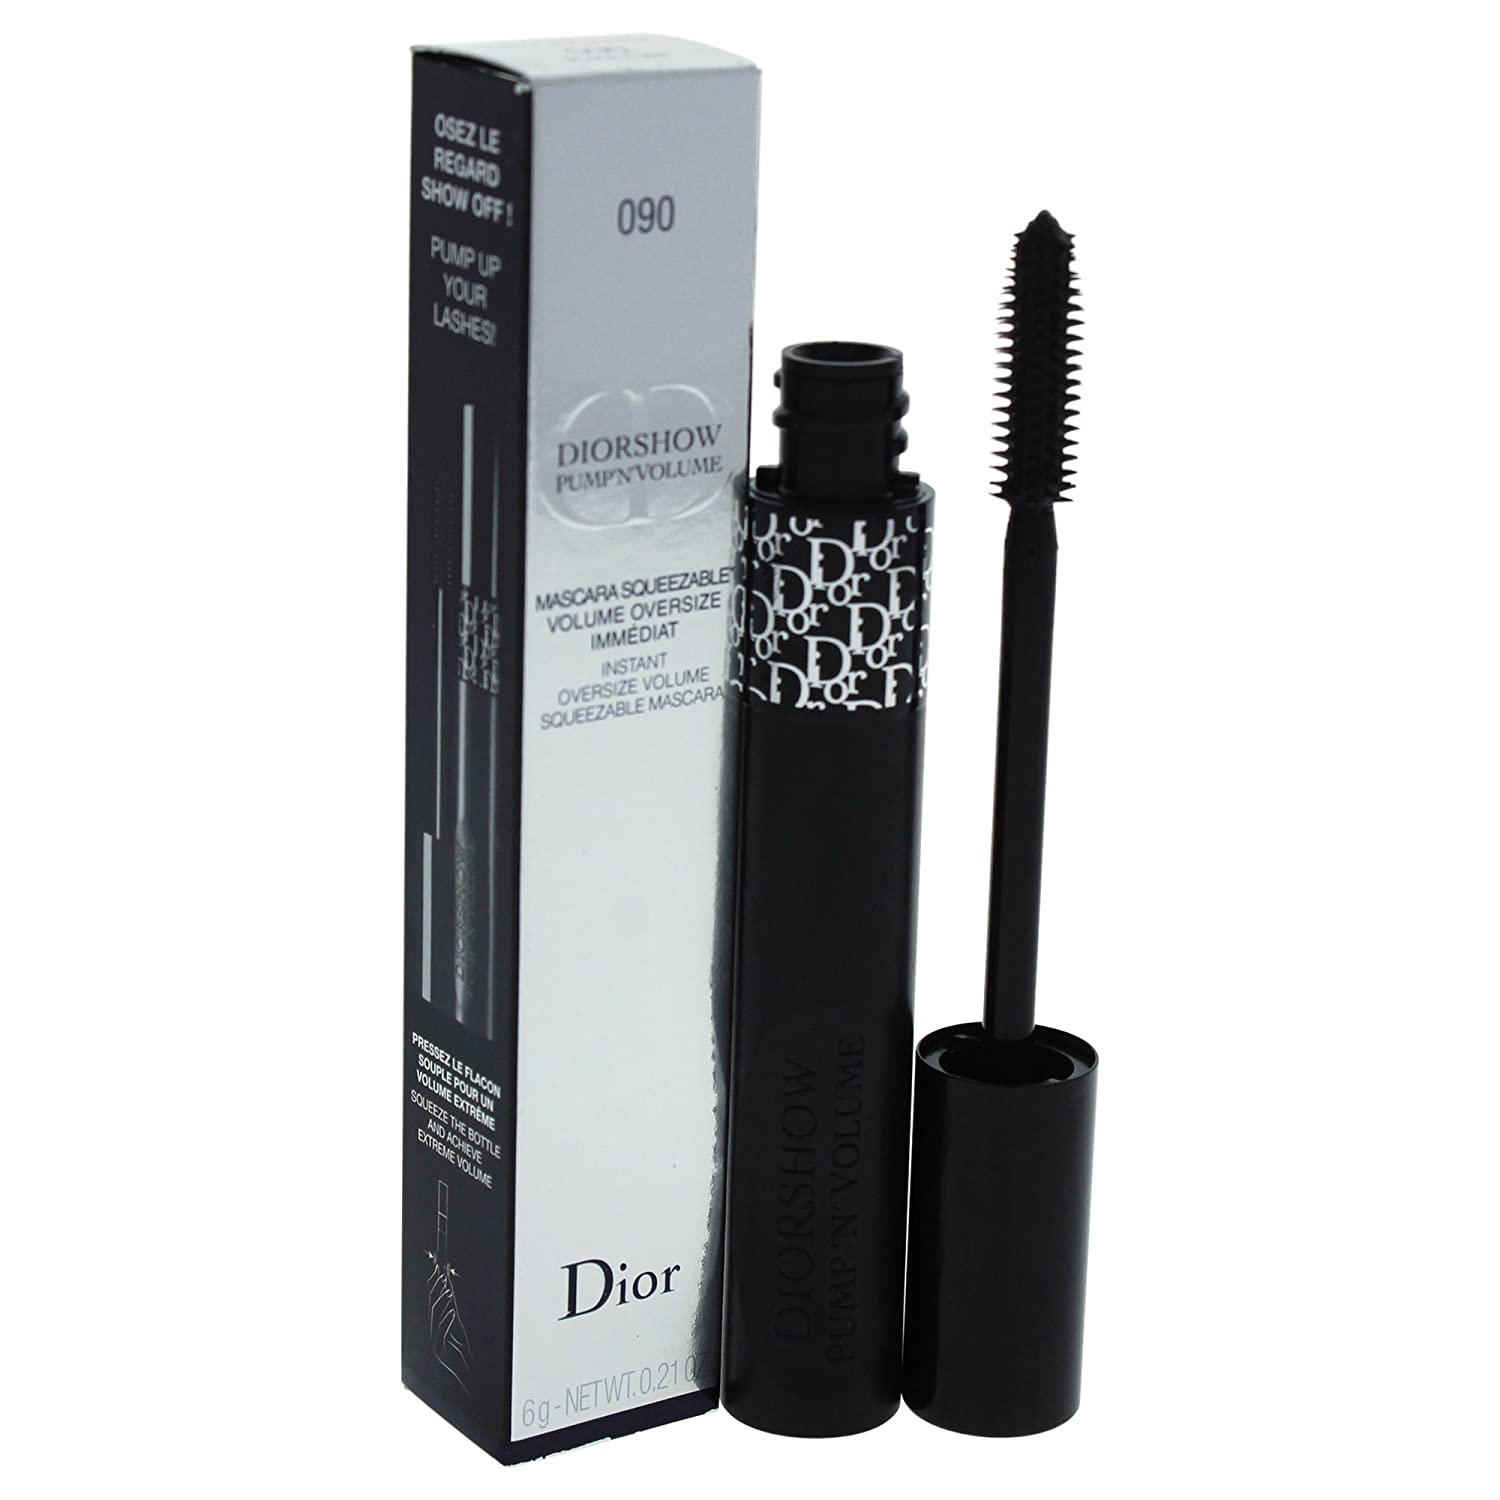 dior mascara  : Christian Dior Diorshow Pump N Volume Mascara, Black ...